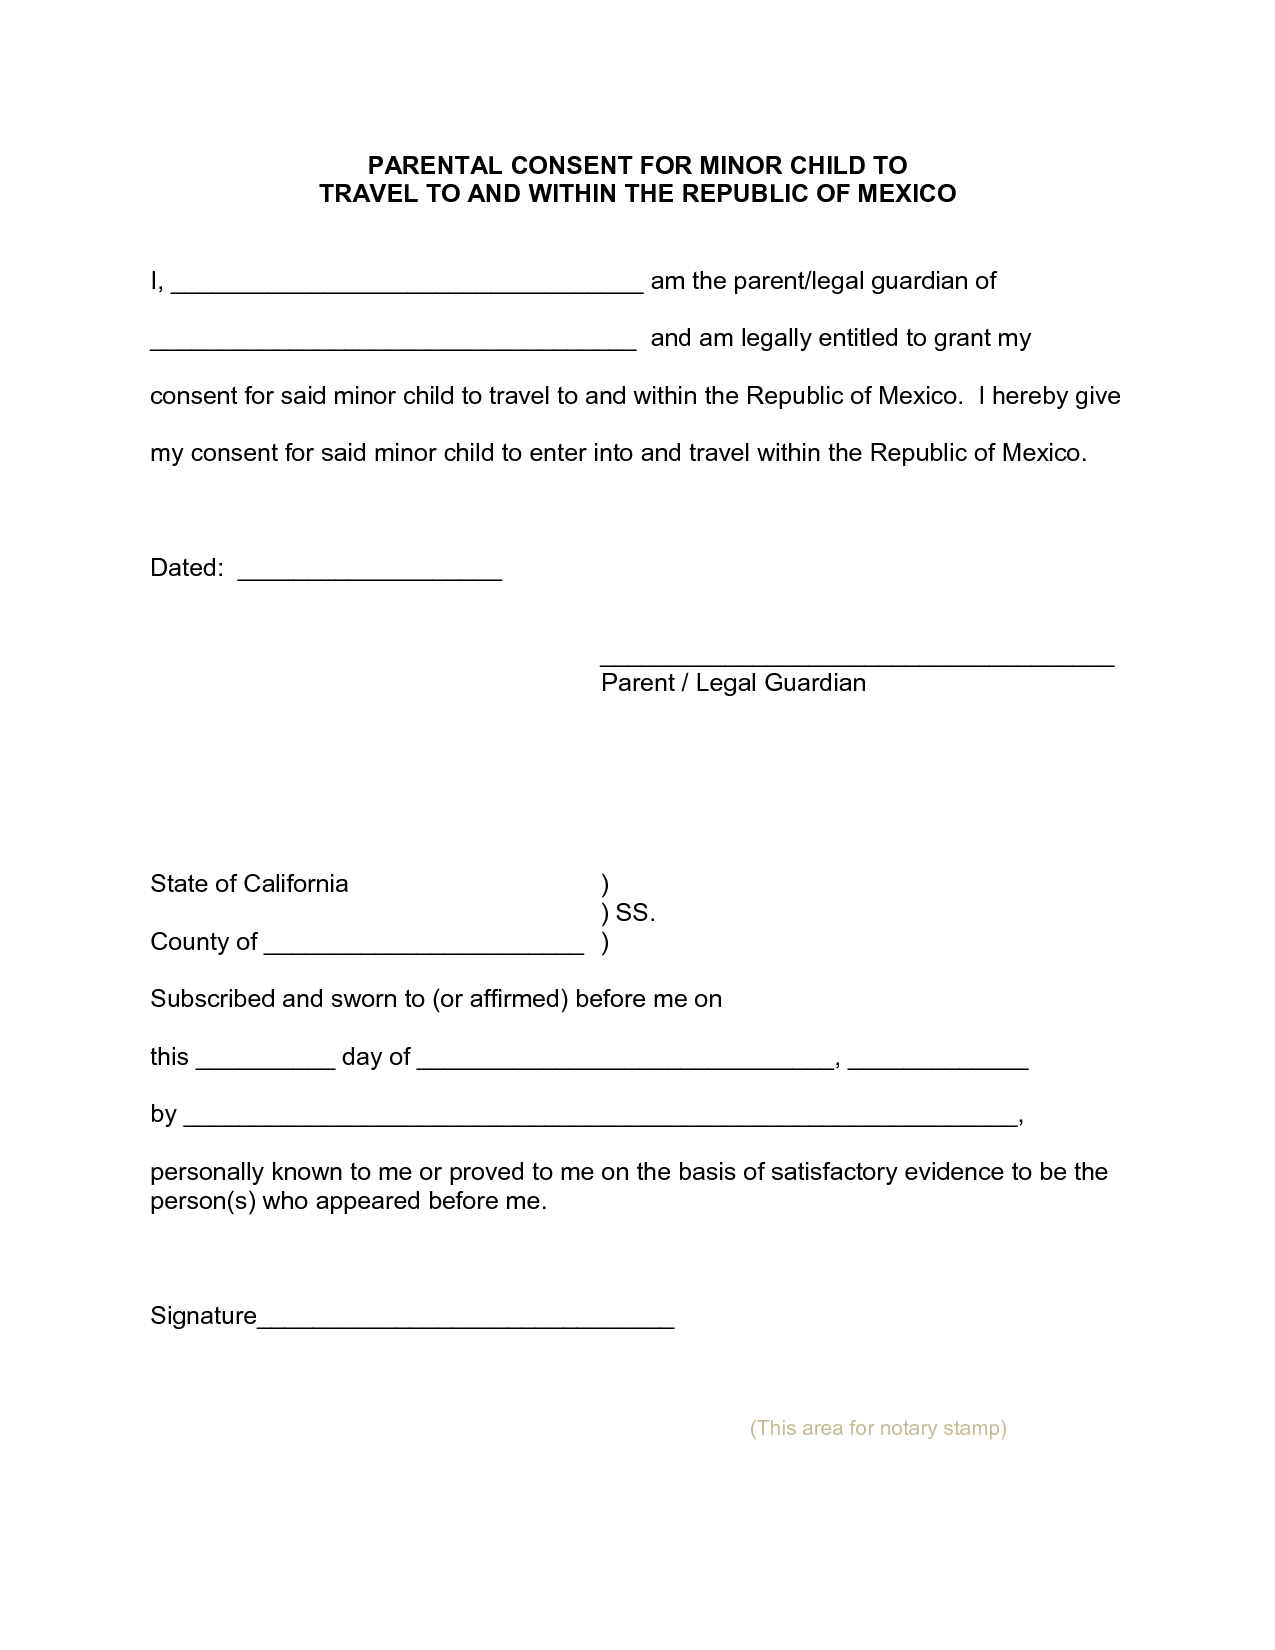 Parent consent letter for minor travel authorization format sample parent consent letter for minor travel authorization format sample spiritdancerdesigns Image collections